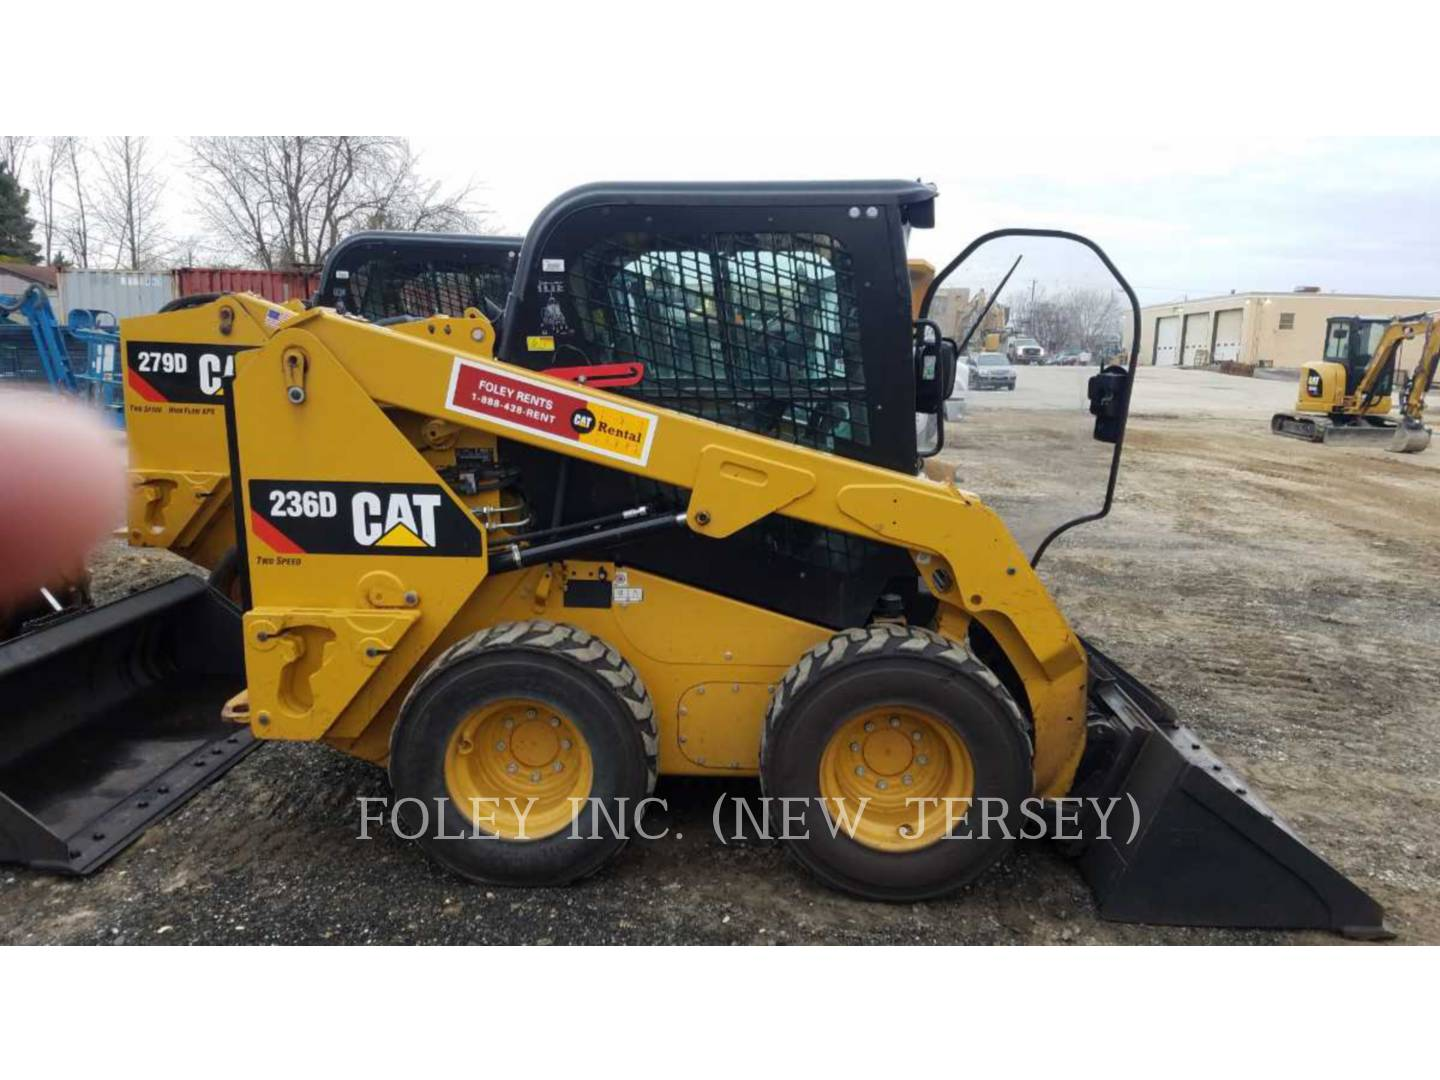 Used Skid Steer Loaders for Sale in NJ, PA, DE and Staten